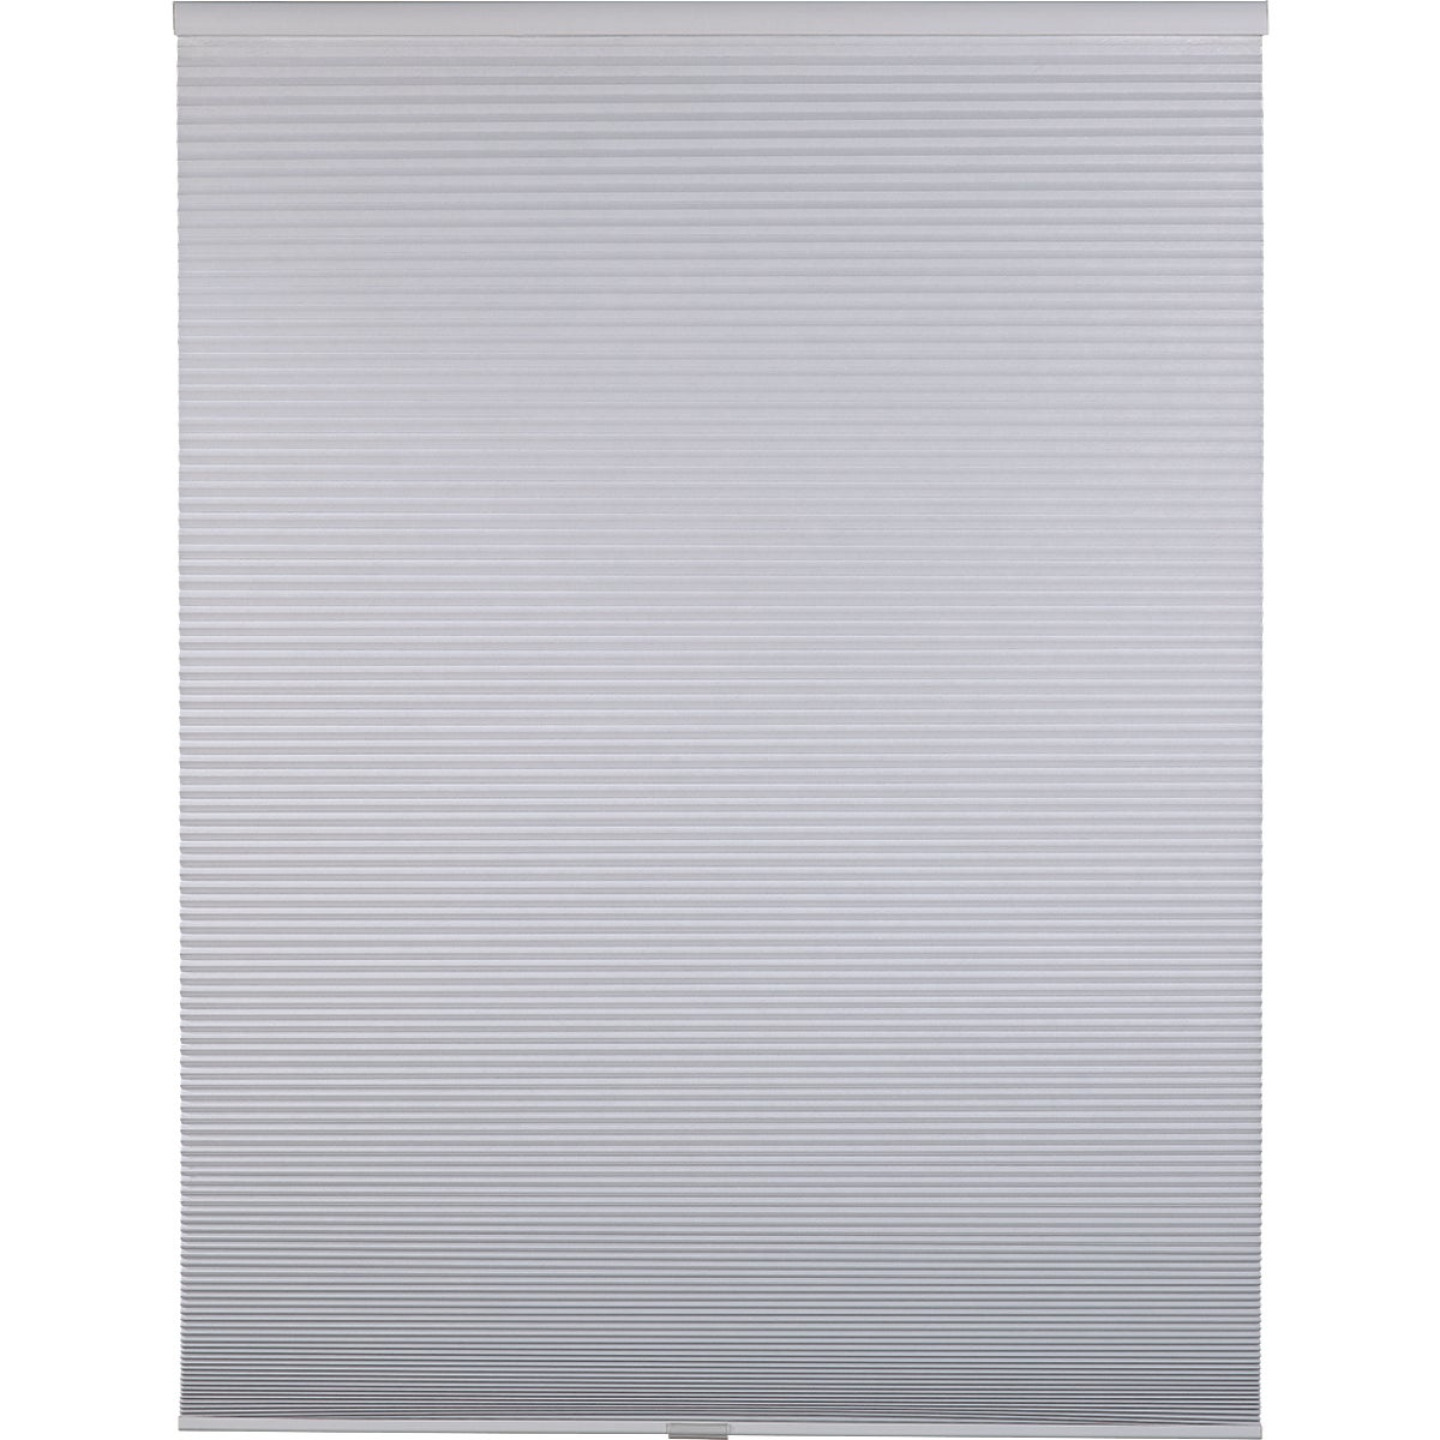 Home Impressions 1 In. Room Darkening Cellular White 23 In. x 72 In. Cordless Shade Image 1